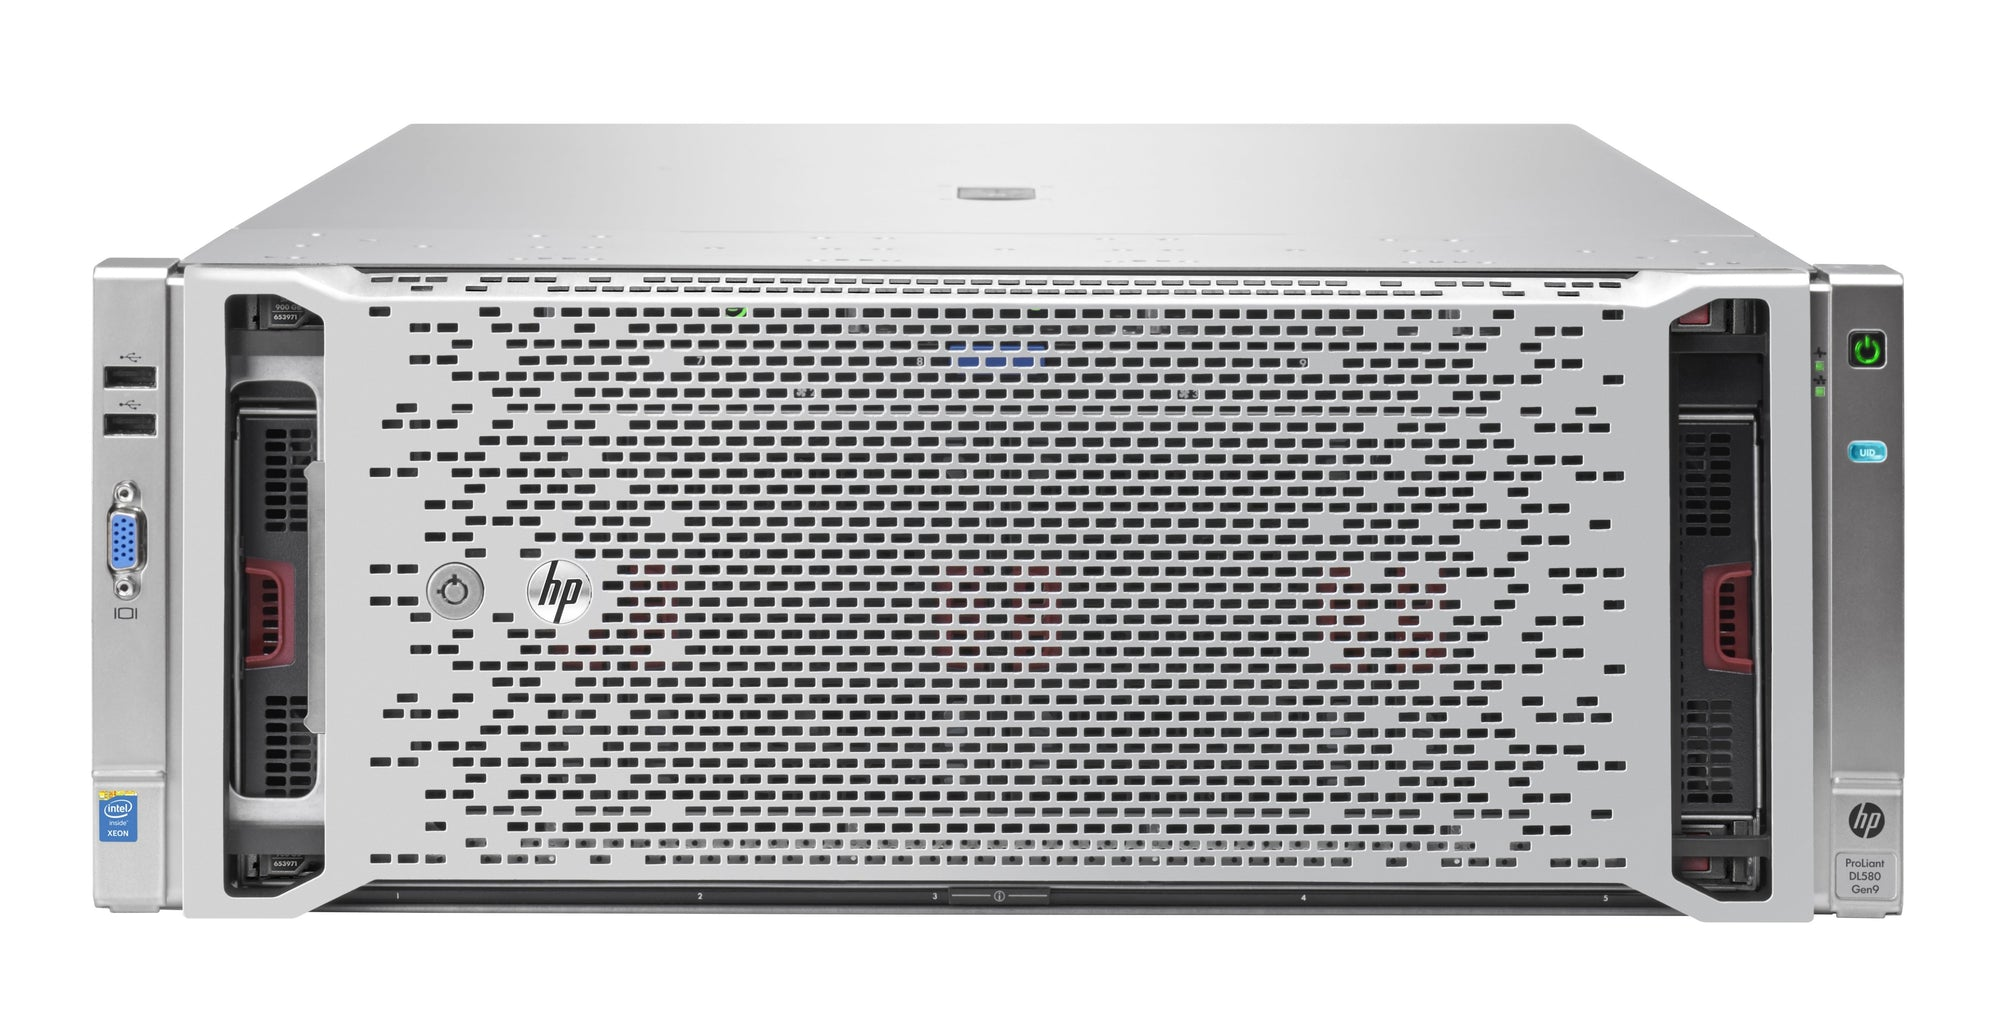 Refurbished HPE ProLiant DL580 Gen9 Configure to Order Server